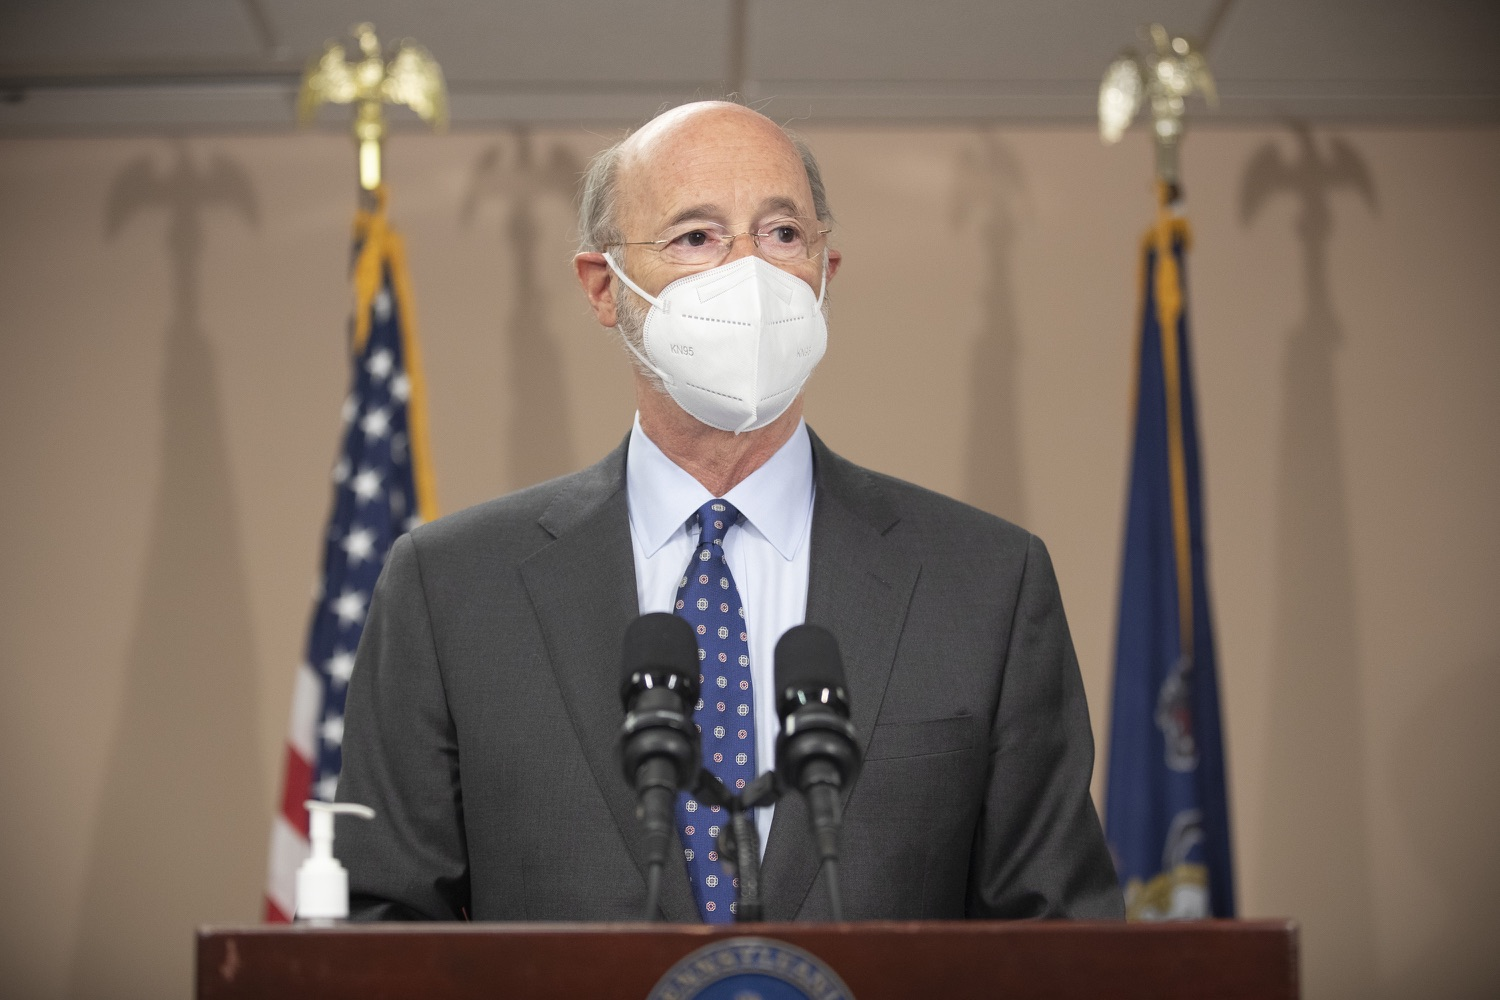 """<a href=""""https://filesource.wostreaming.net/commonwealthofpa/photo/18646_gov_vaccines_dz_017.jpg"""" target=""""_blank"""">⇣Download Photo<br></a>Pennsylvania Governor Tom Wolf speaking with the press.  After vaccinating more than 112,500 teachers and school staff in only about three weeks, Governor Tom Wolf visited Luzerne County today to announce the special vaccination initiative is a success and was completed ahead of schedule. The accomplishment is an important step to help more students and teachers safely return to classrooms across the state.  Kingston, PA - April 2, 2021"""